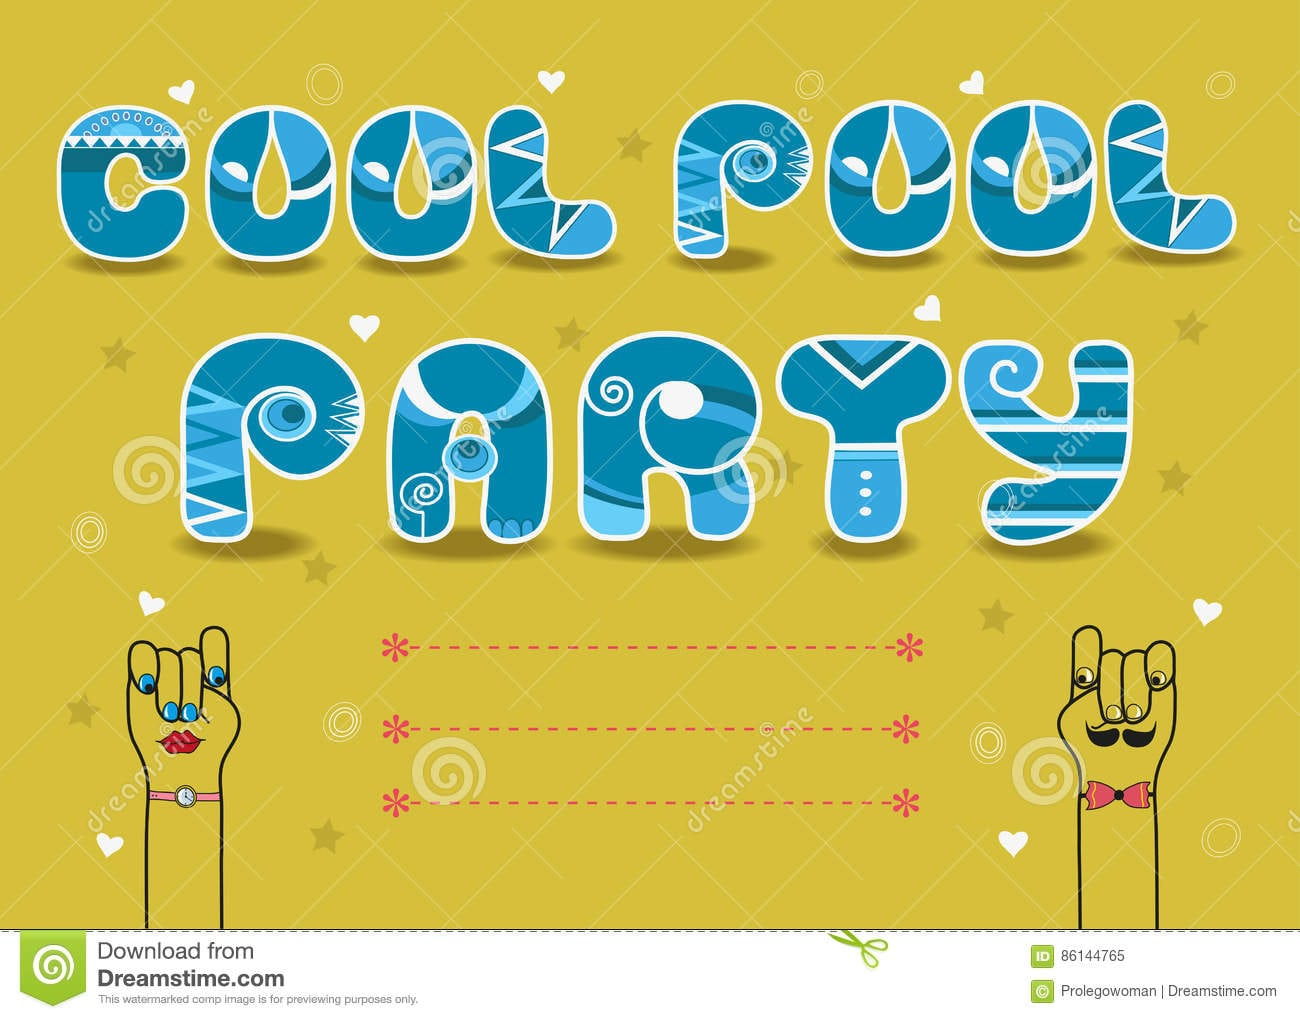 Cool Pool Party Invitations Mickey Mouse Invitations Templates – Cool Pool Party Invitations